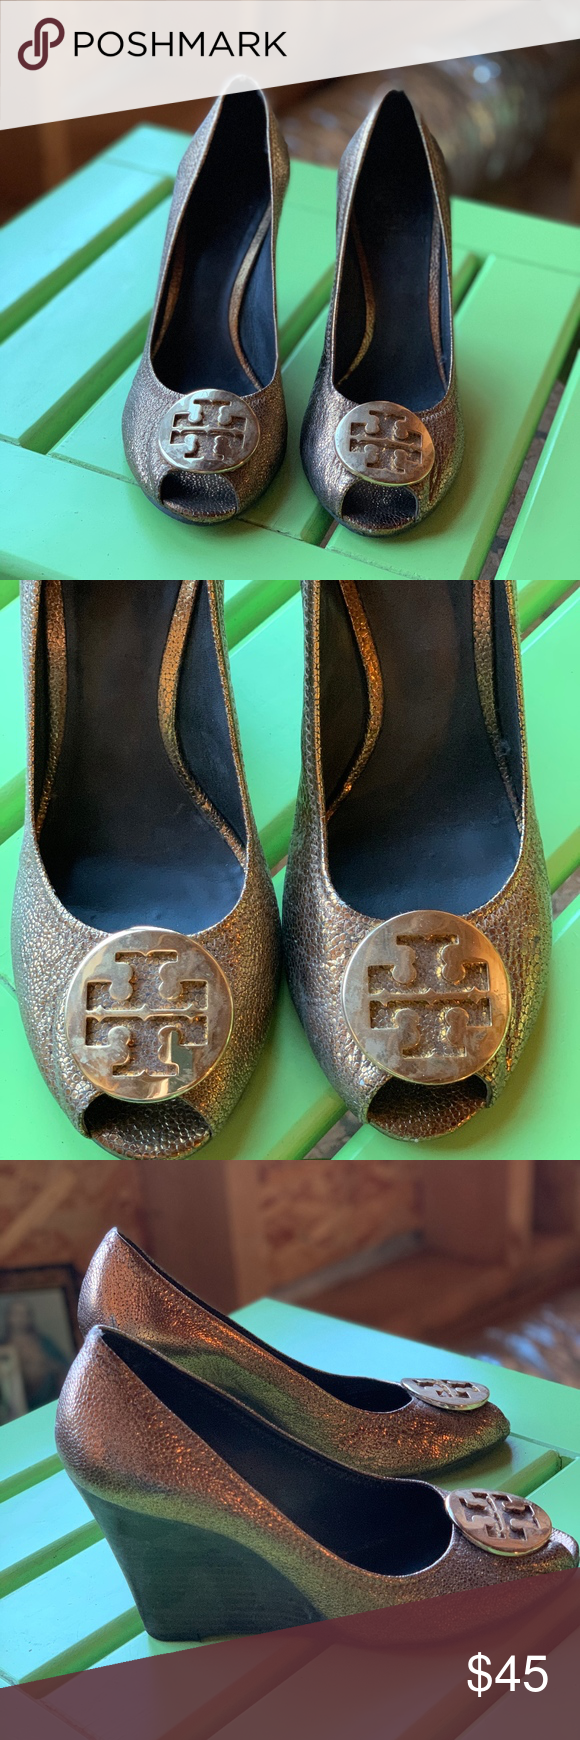 Gold Wedge Shoes Tory Burch Gold Metallic Wedge Shoes  USED but in GREAT Conditi…